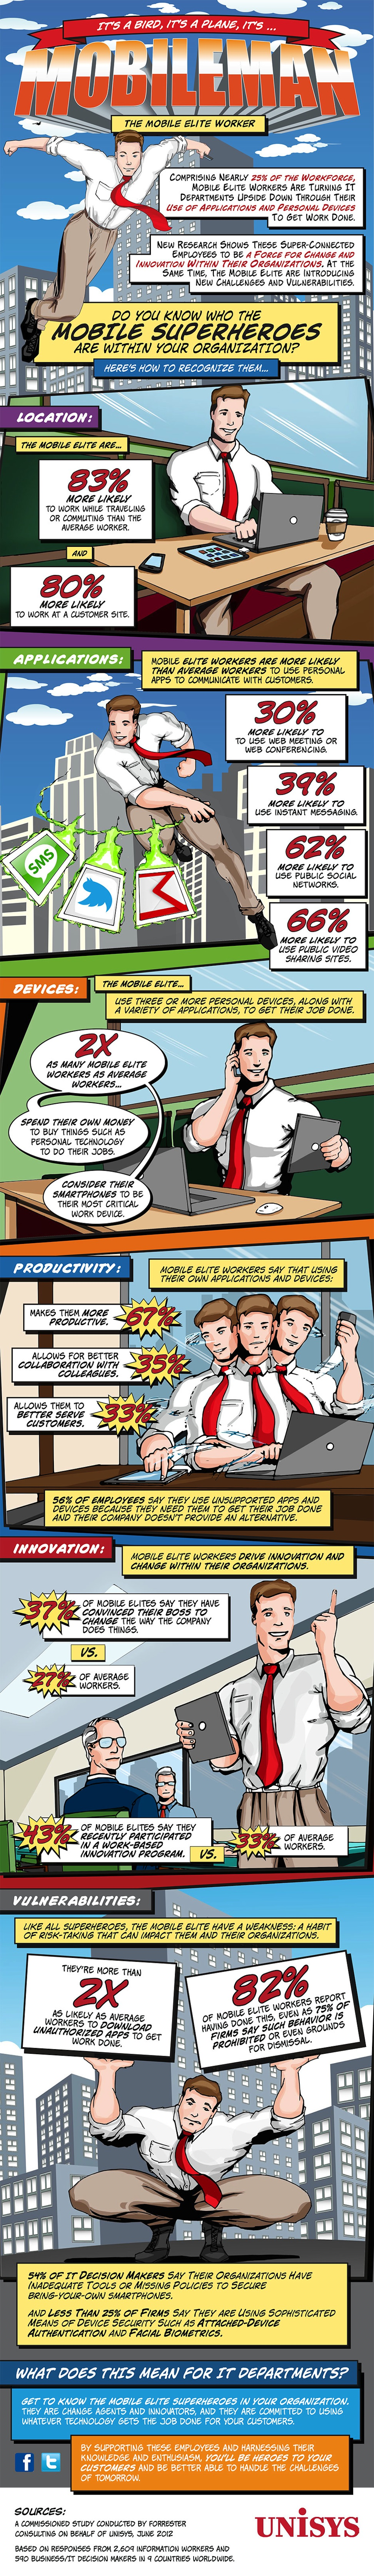 Infographic - The Mobile Superworker